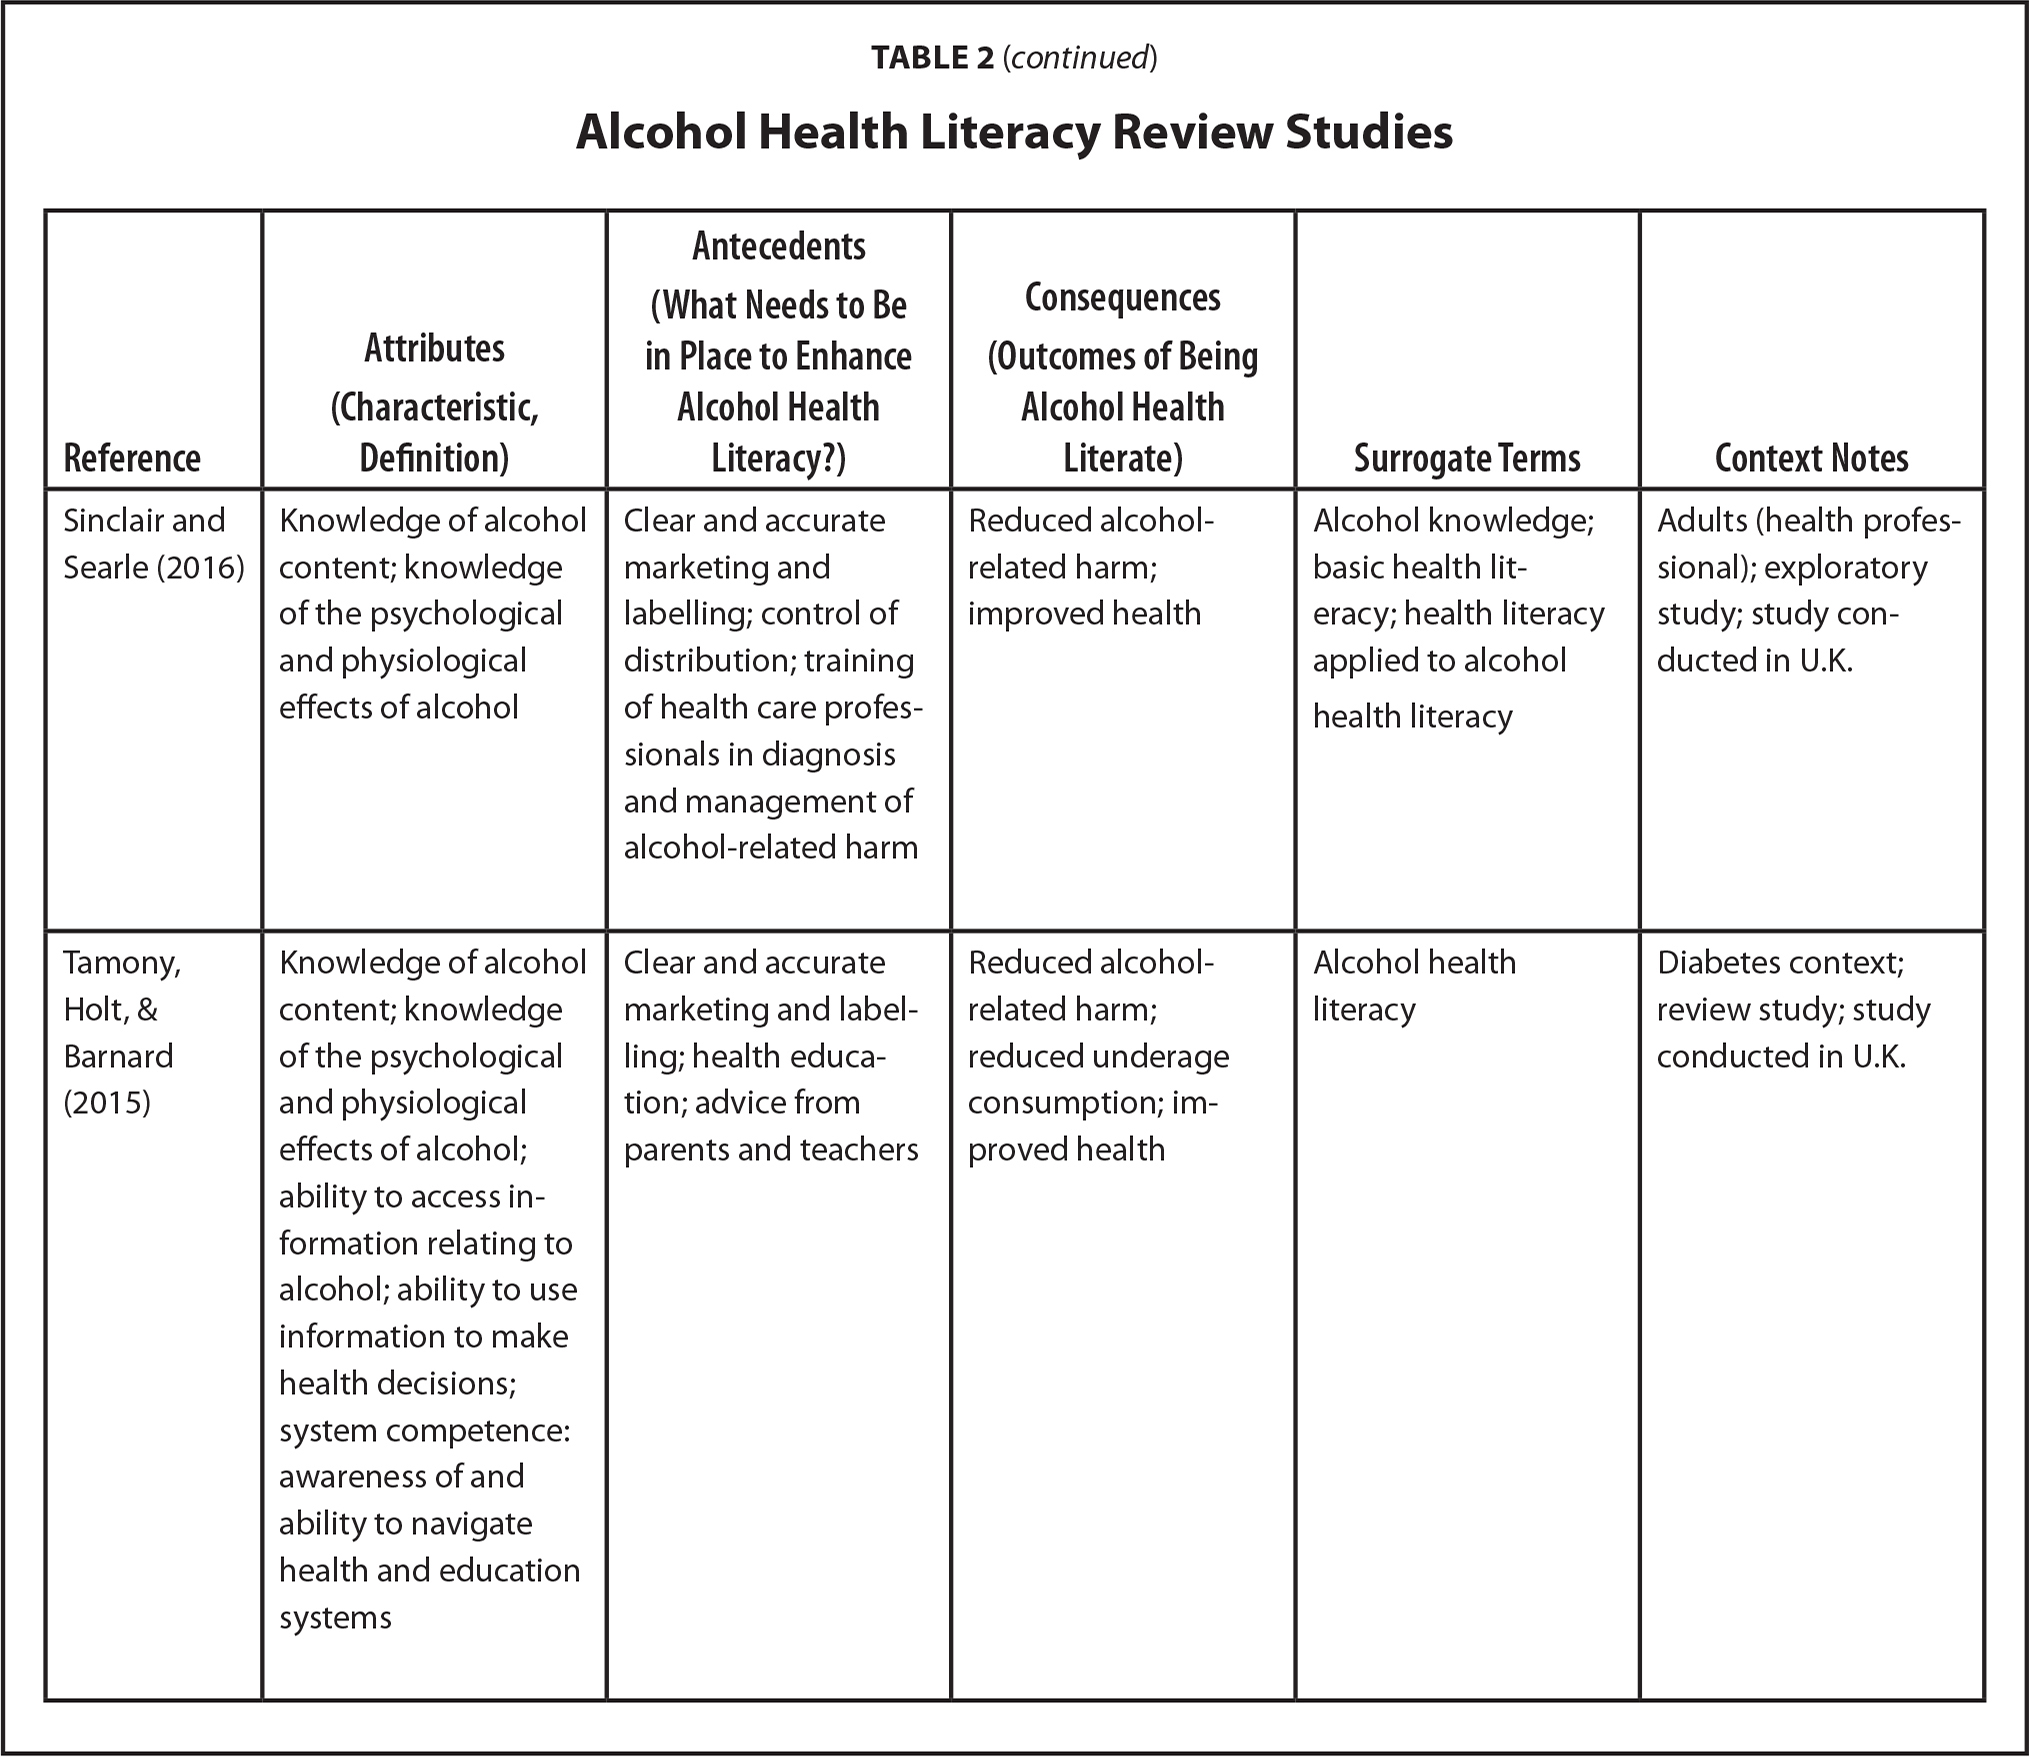 Alcohol Health Literacy Review Studies